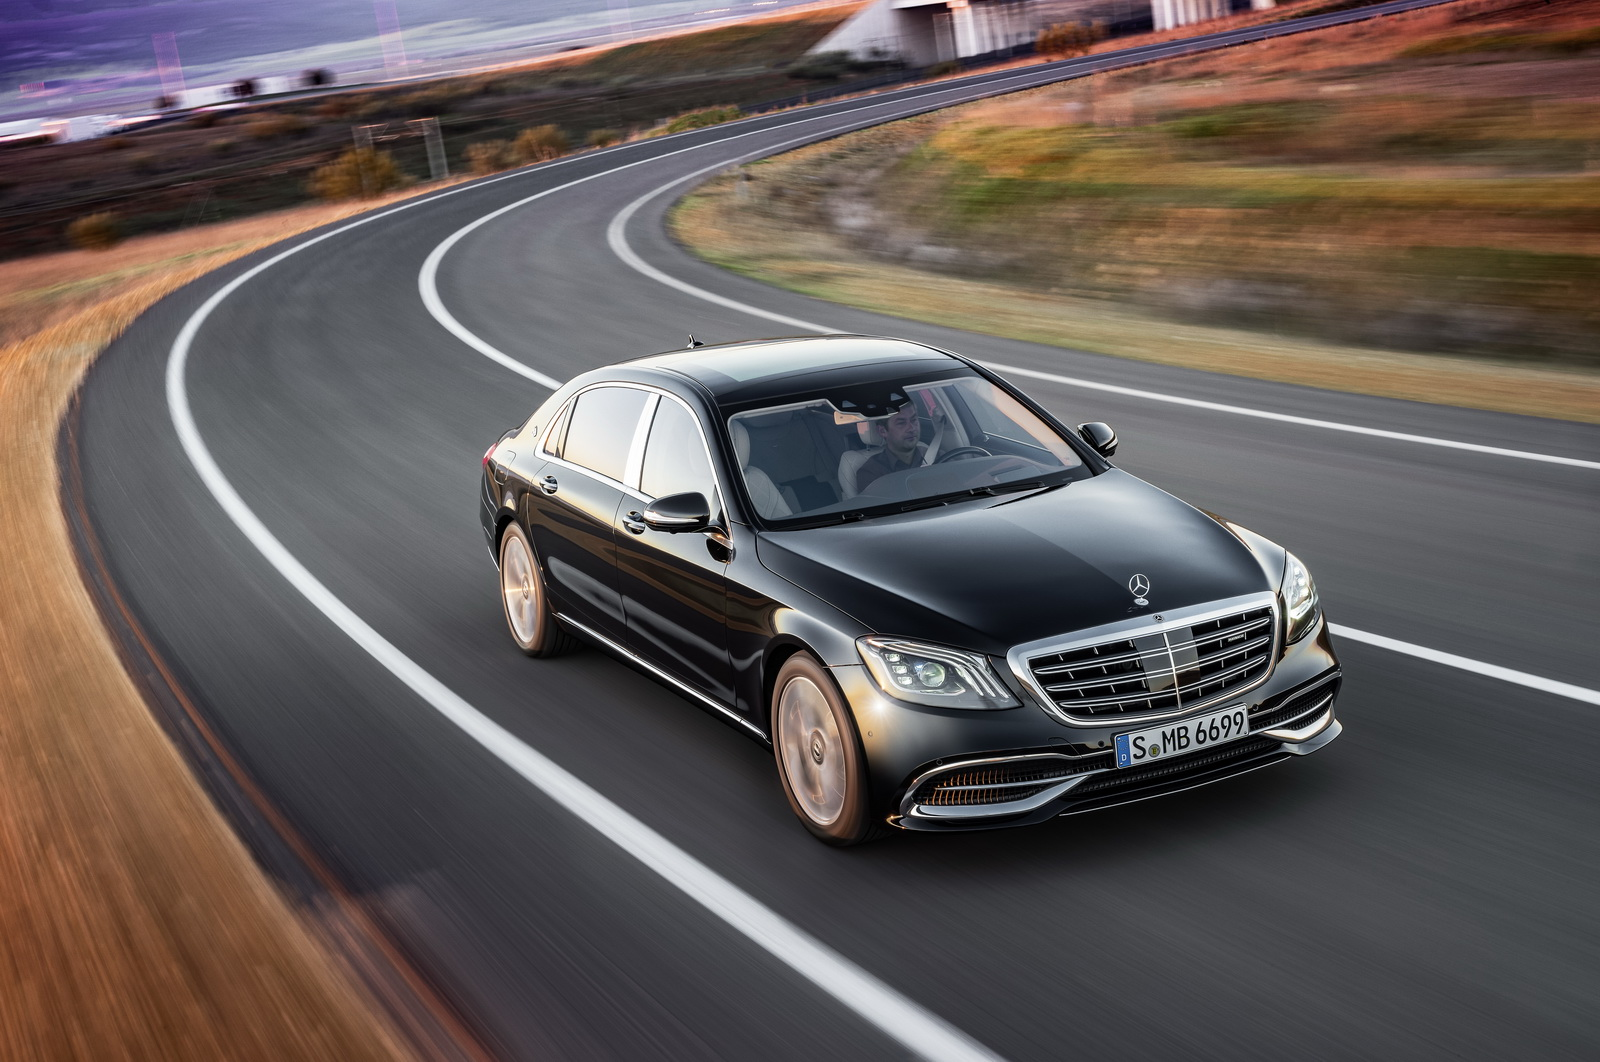 2018 mercedes benz s class priced from under 91k for Mercedes benz s price